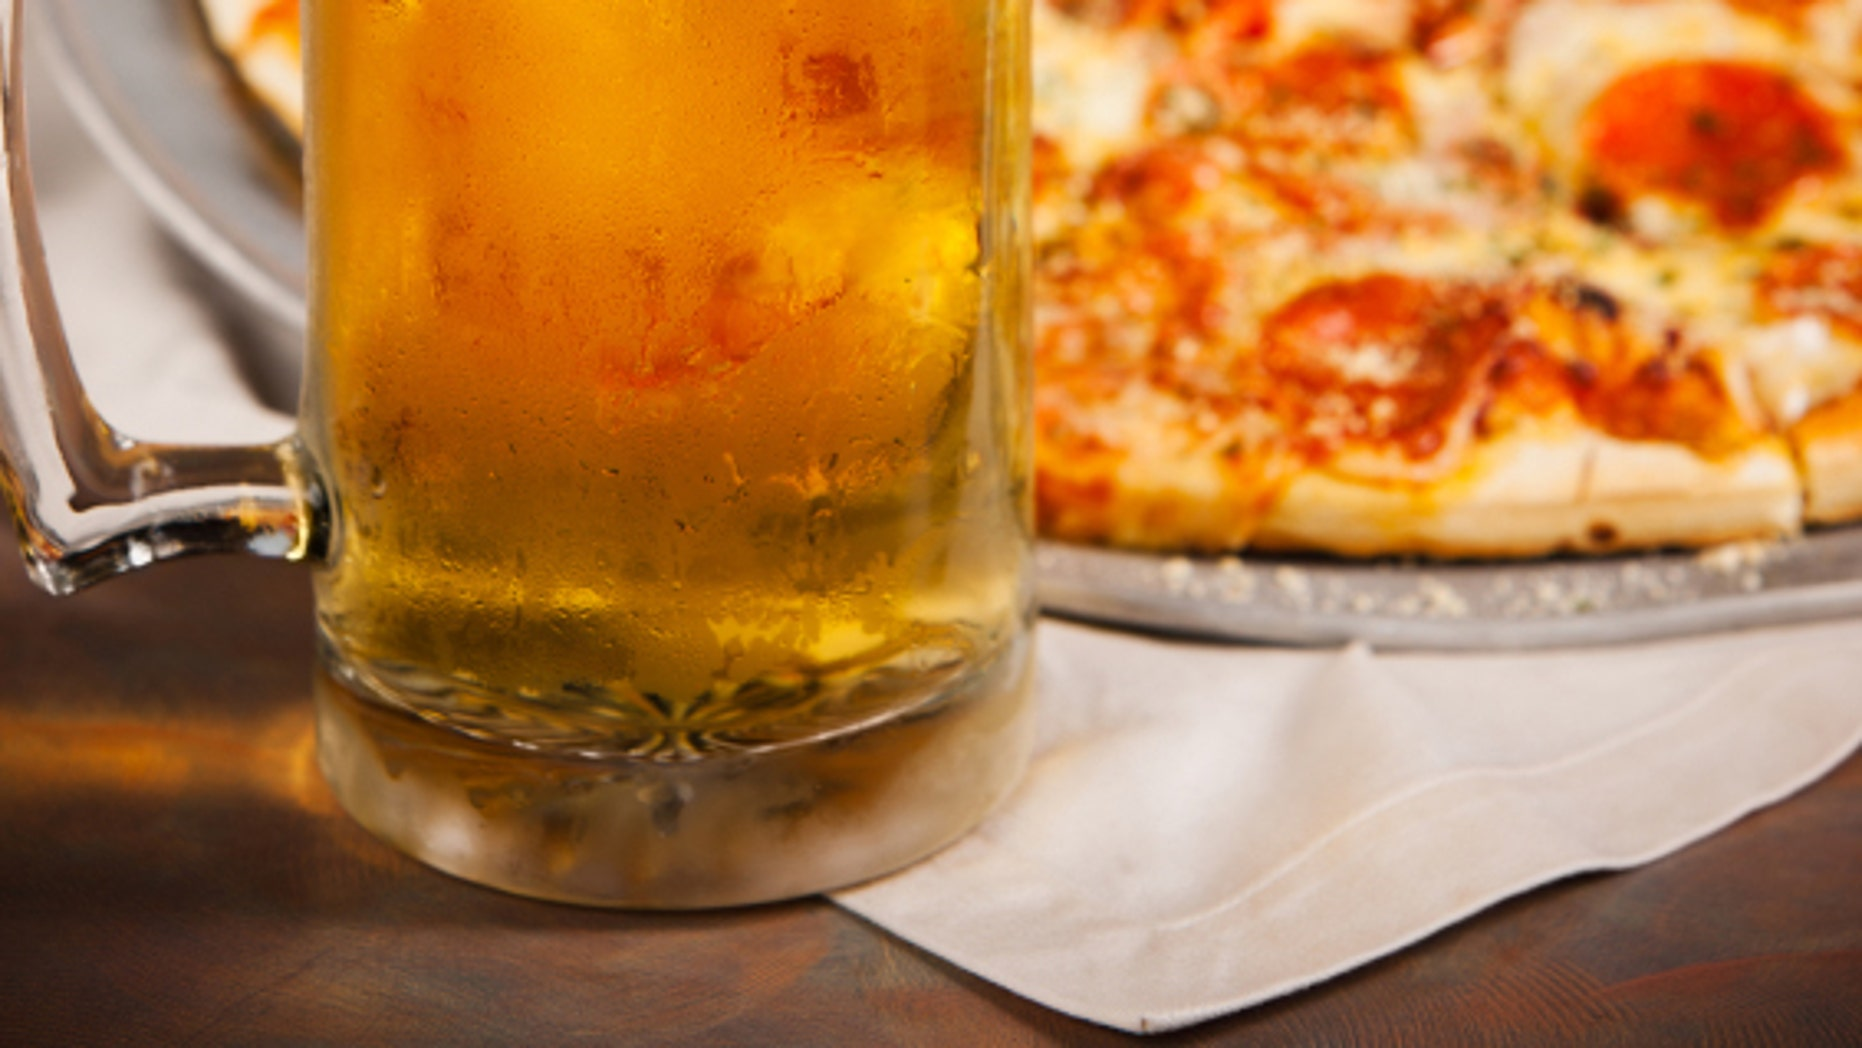 Pizza and beer can be delivered together in Pennsylvania.